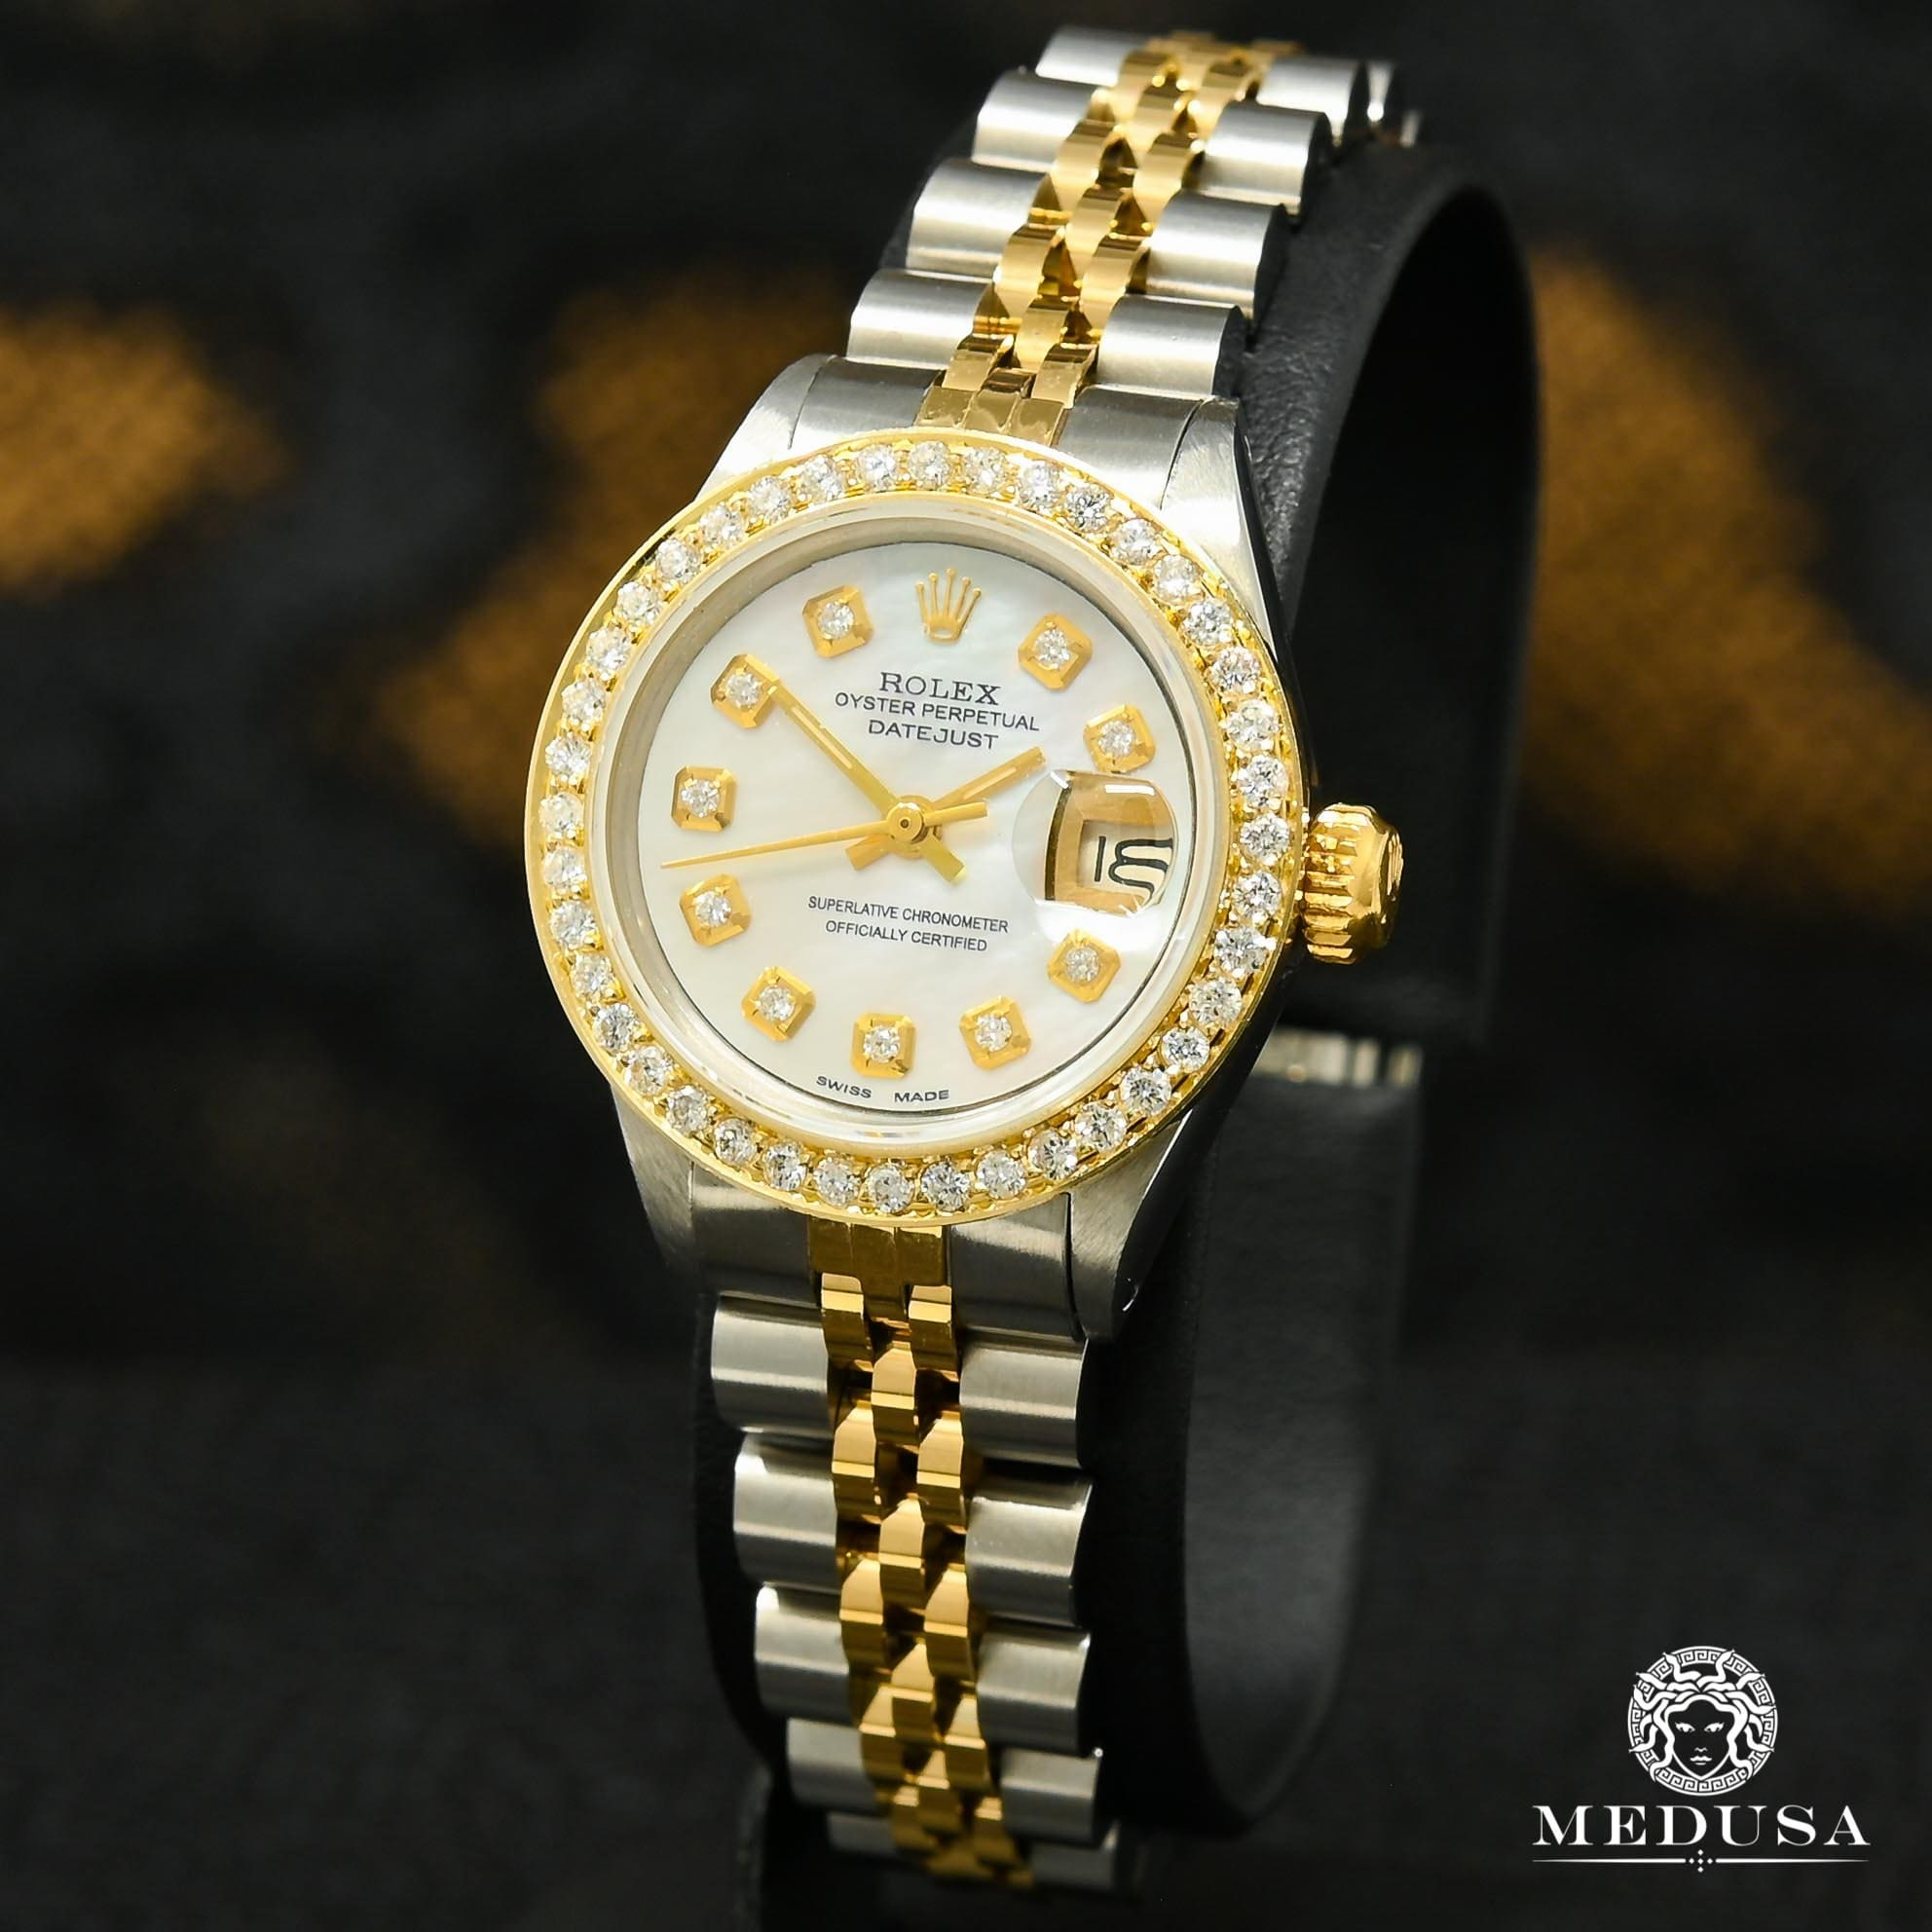 Montre Rolex | Montre Femme Rolex Datejust 26mm - White ''Mother of Pearl'' Or 2 Tons